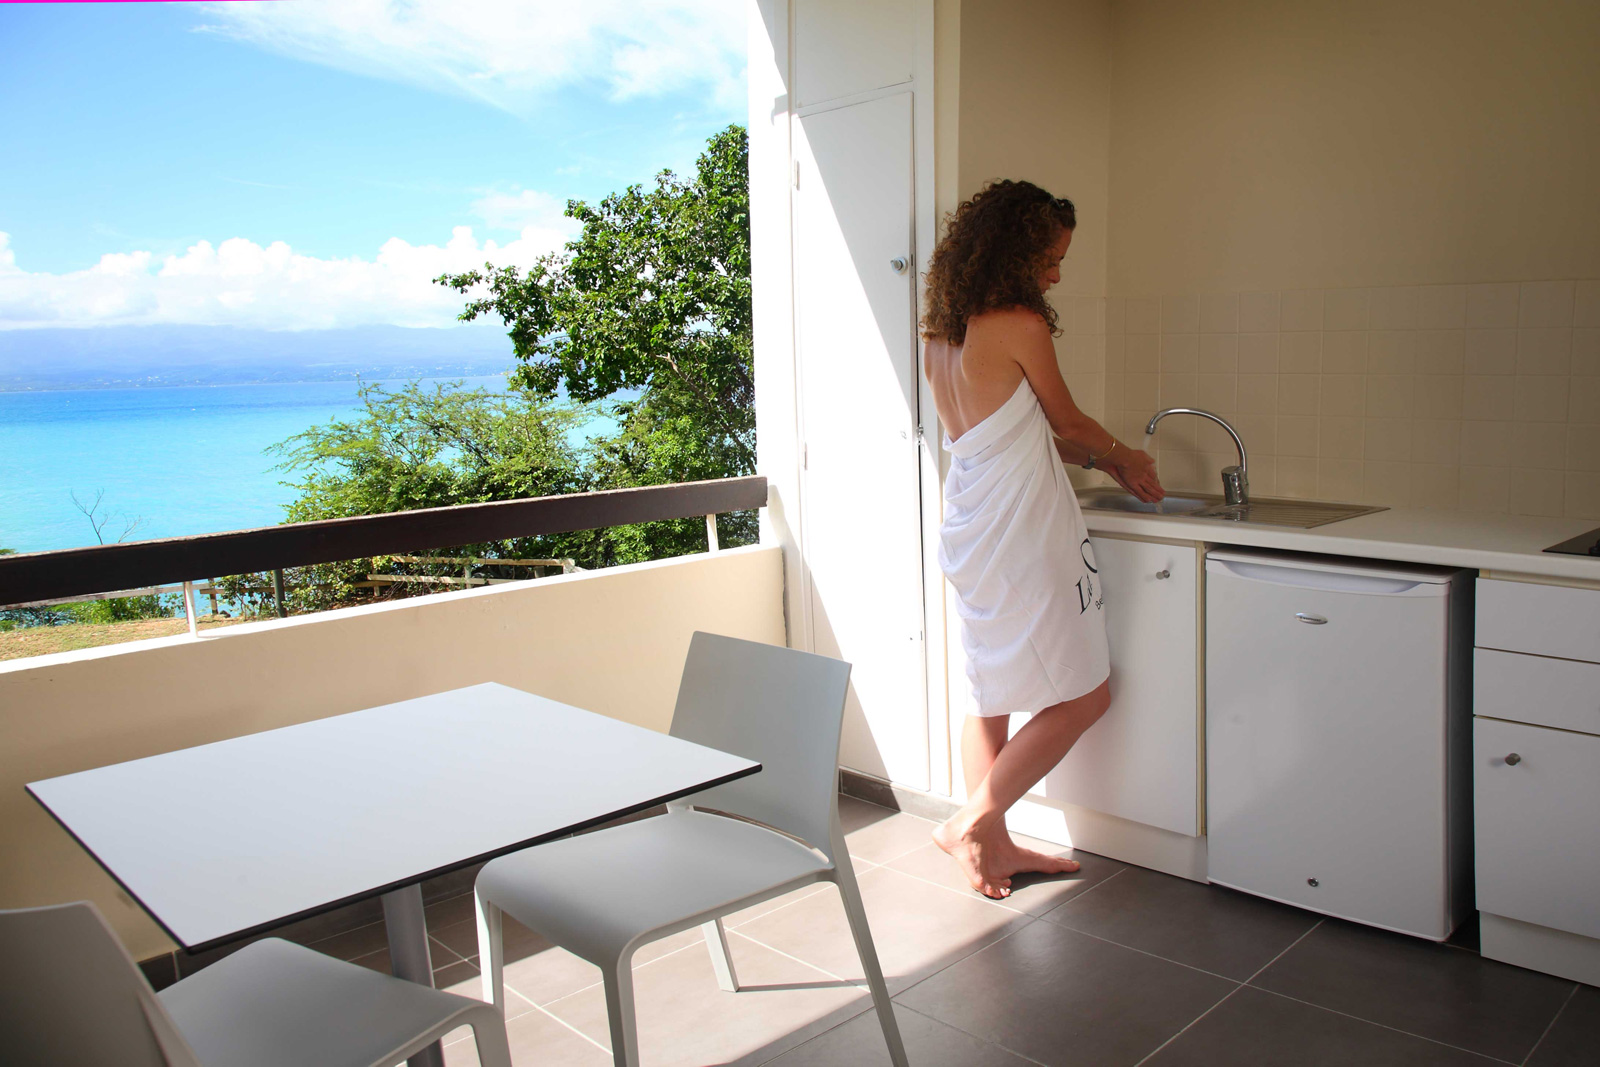 http://www.deshotelsetdesiles.com/hotel-vol-guadeloupe/photos/Chambre-Mahogany.28.jpg